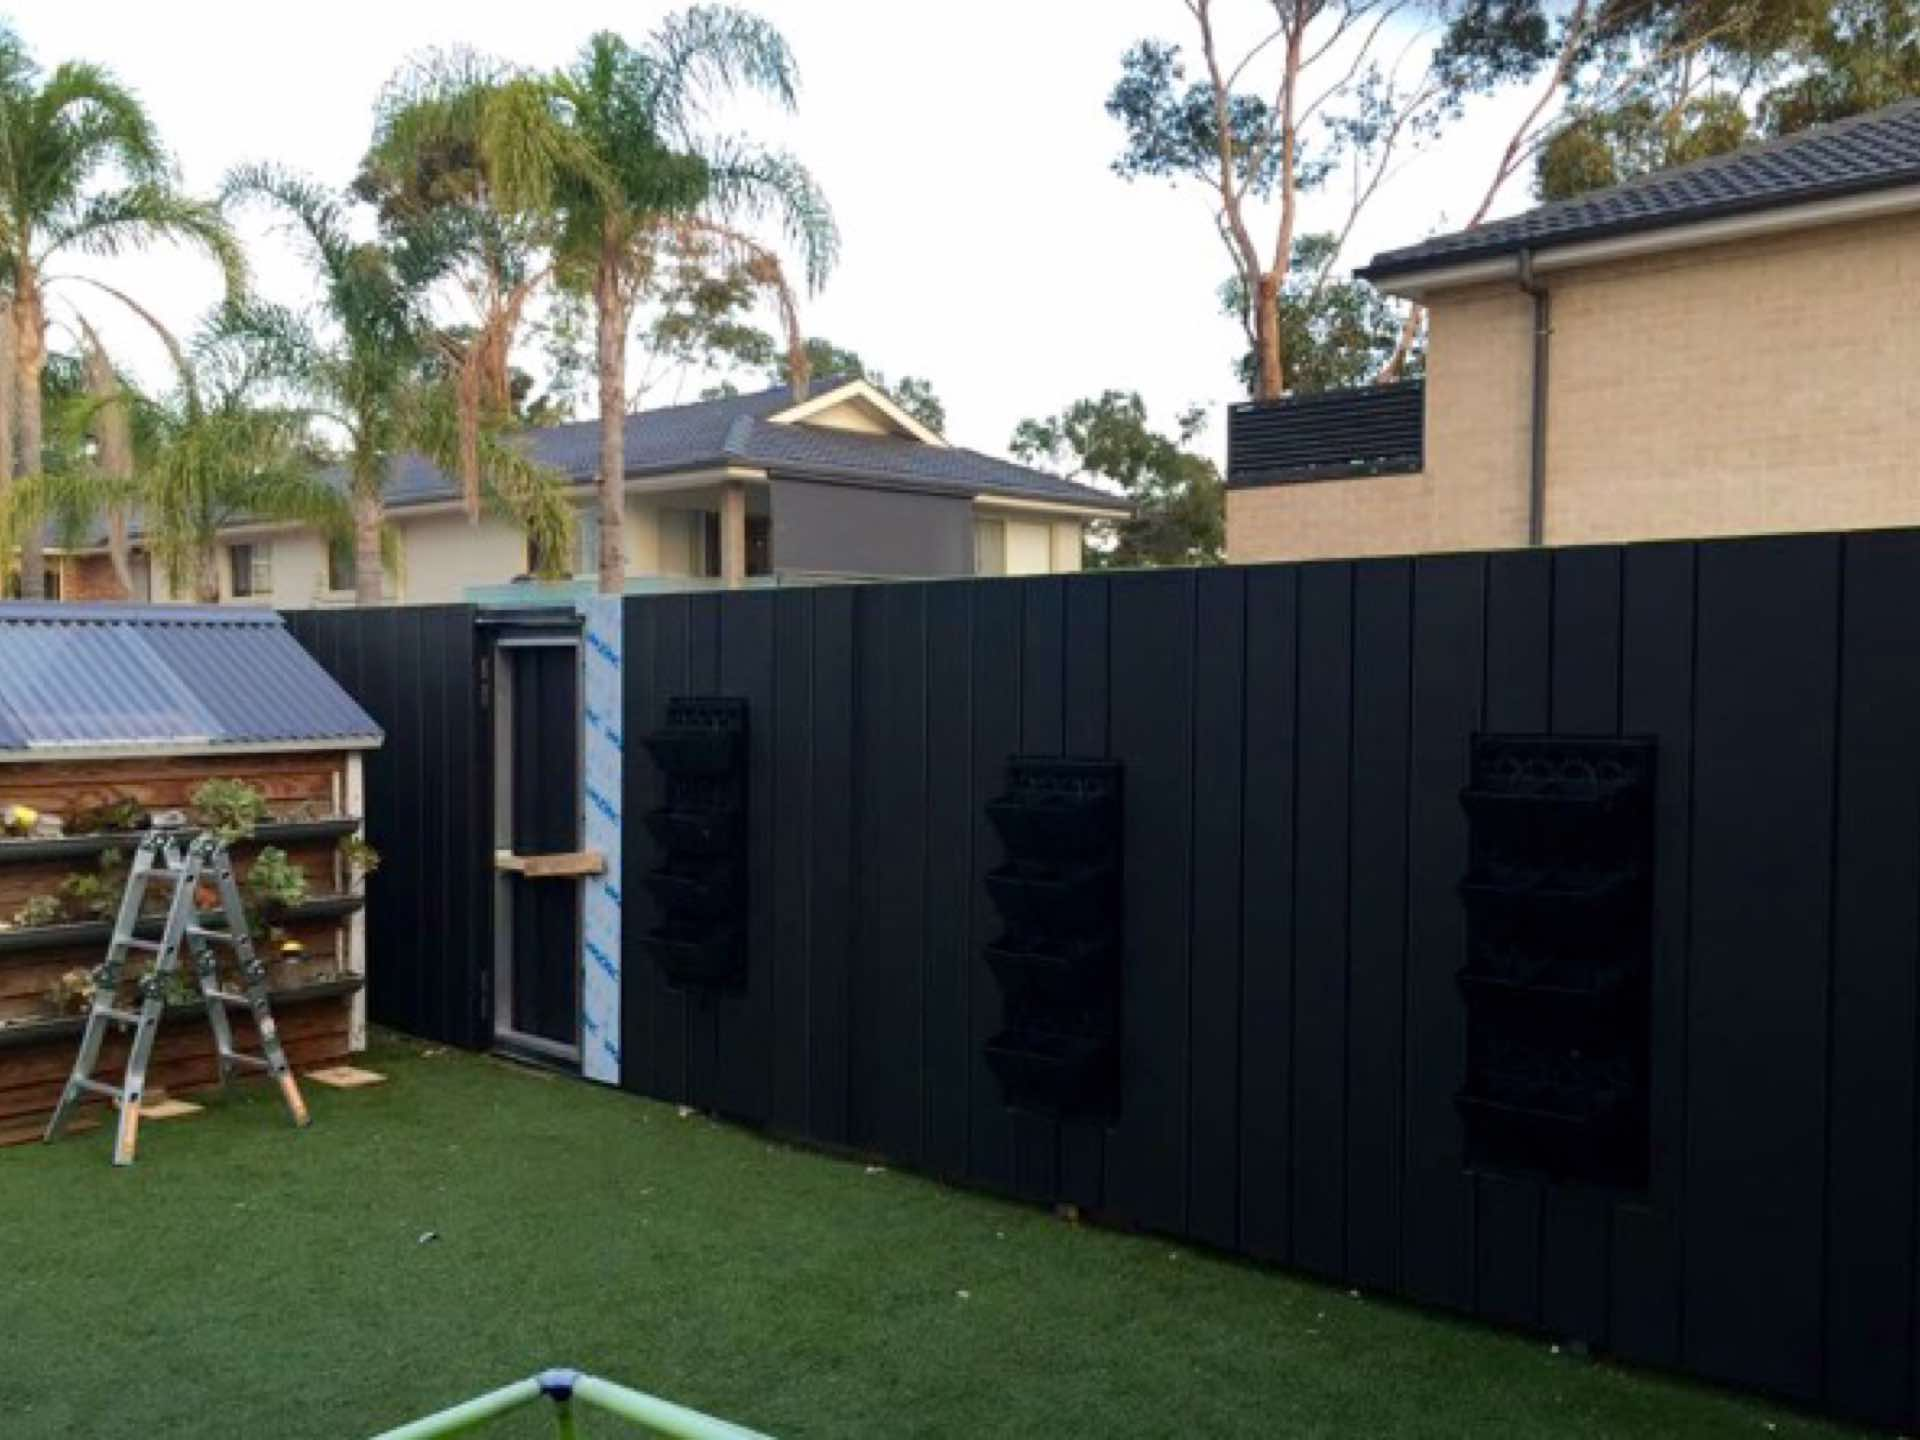 Ready for plants in vertical garden North Curl Curl, NSW